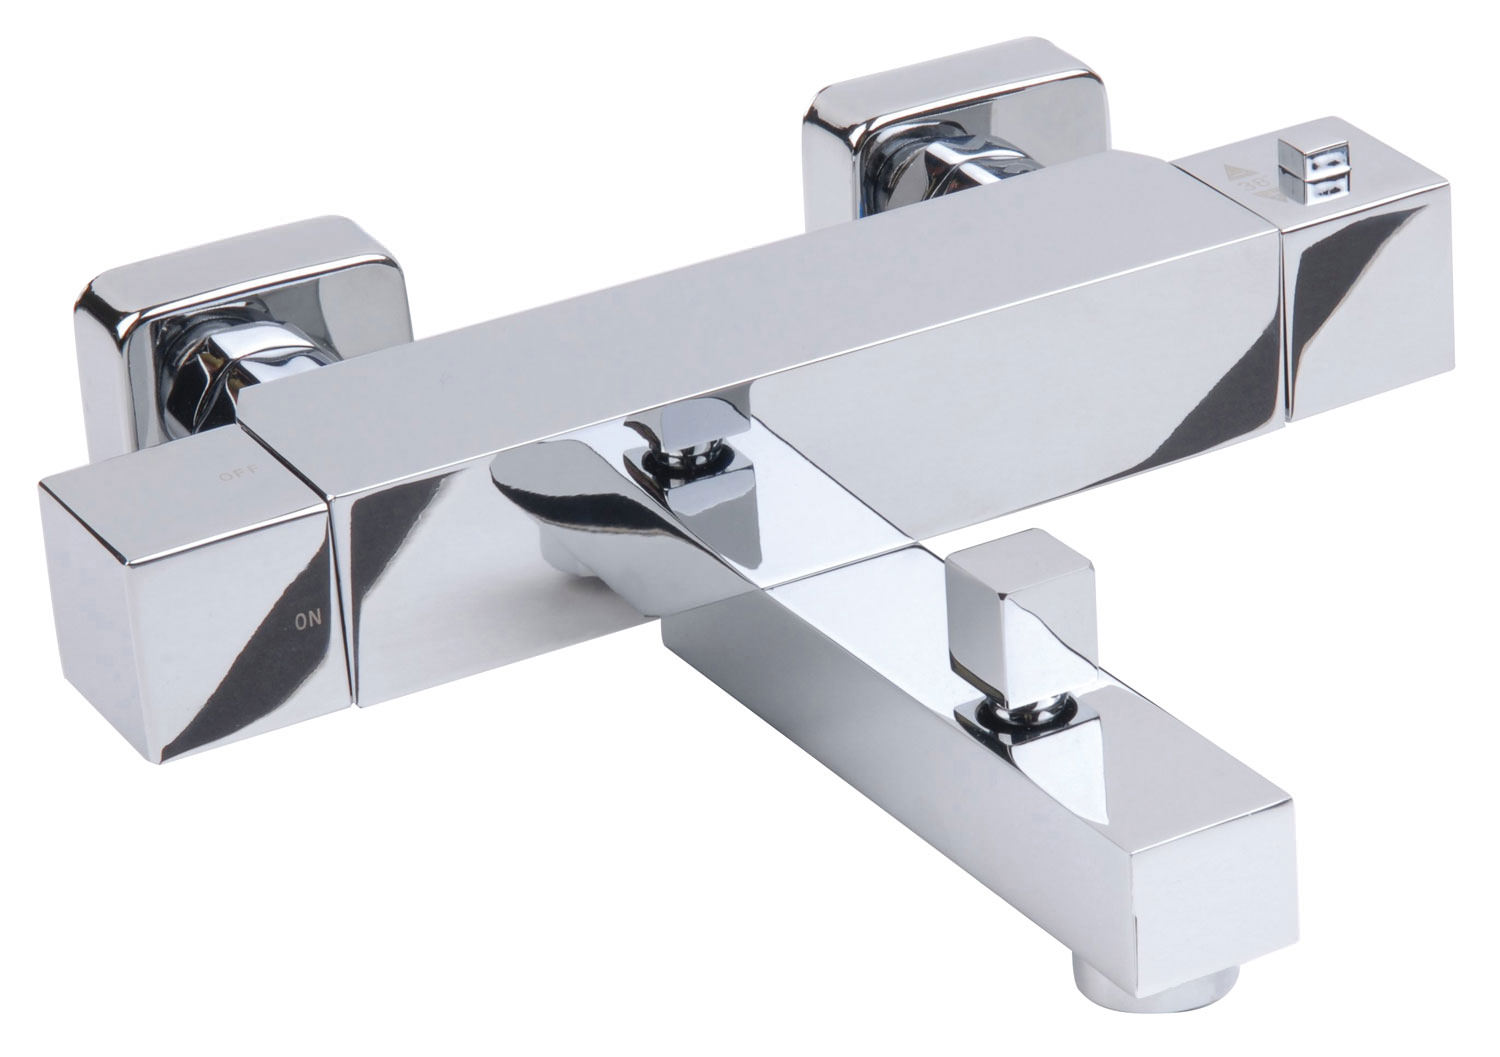 Mayfair Kubo Chrome Wall Mounted Bath Shower Mixer Tap Kub500